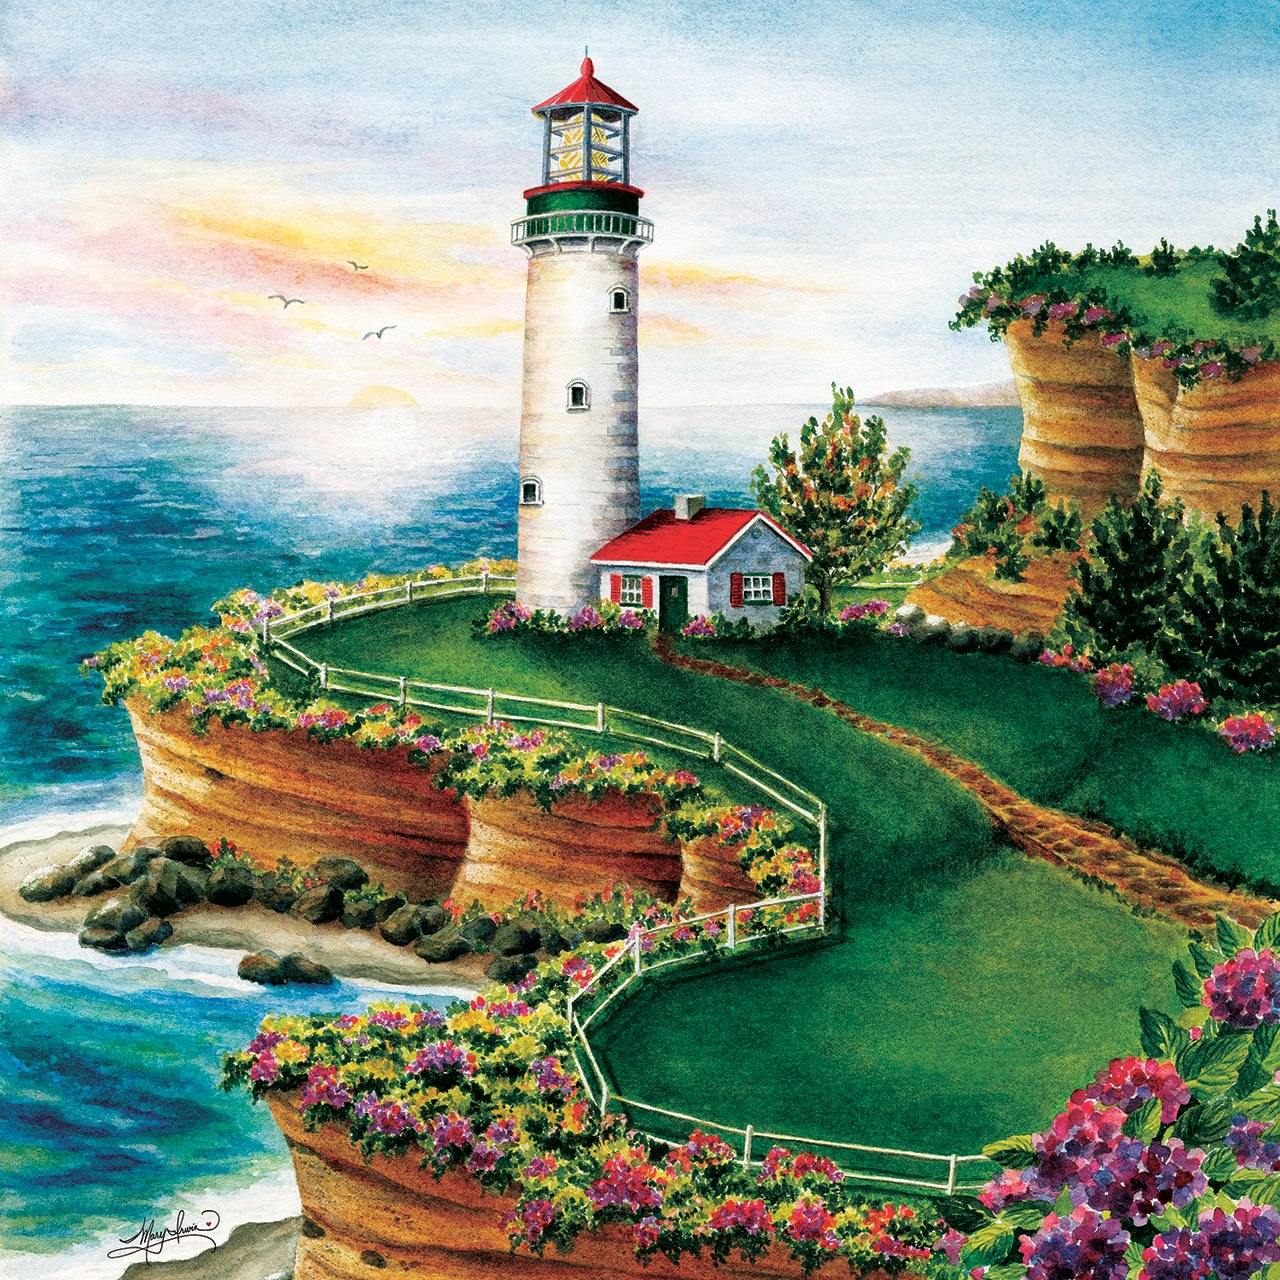 Lighthouse Sunset - 500pc Jigsaw Puzzle By Sunsout  			  					NEW